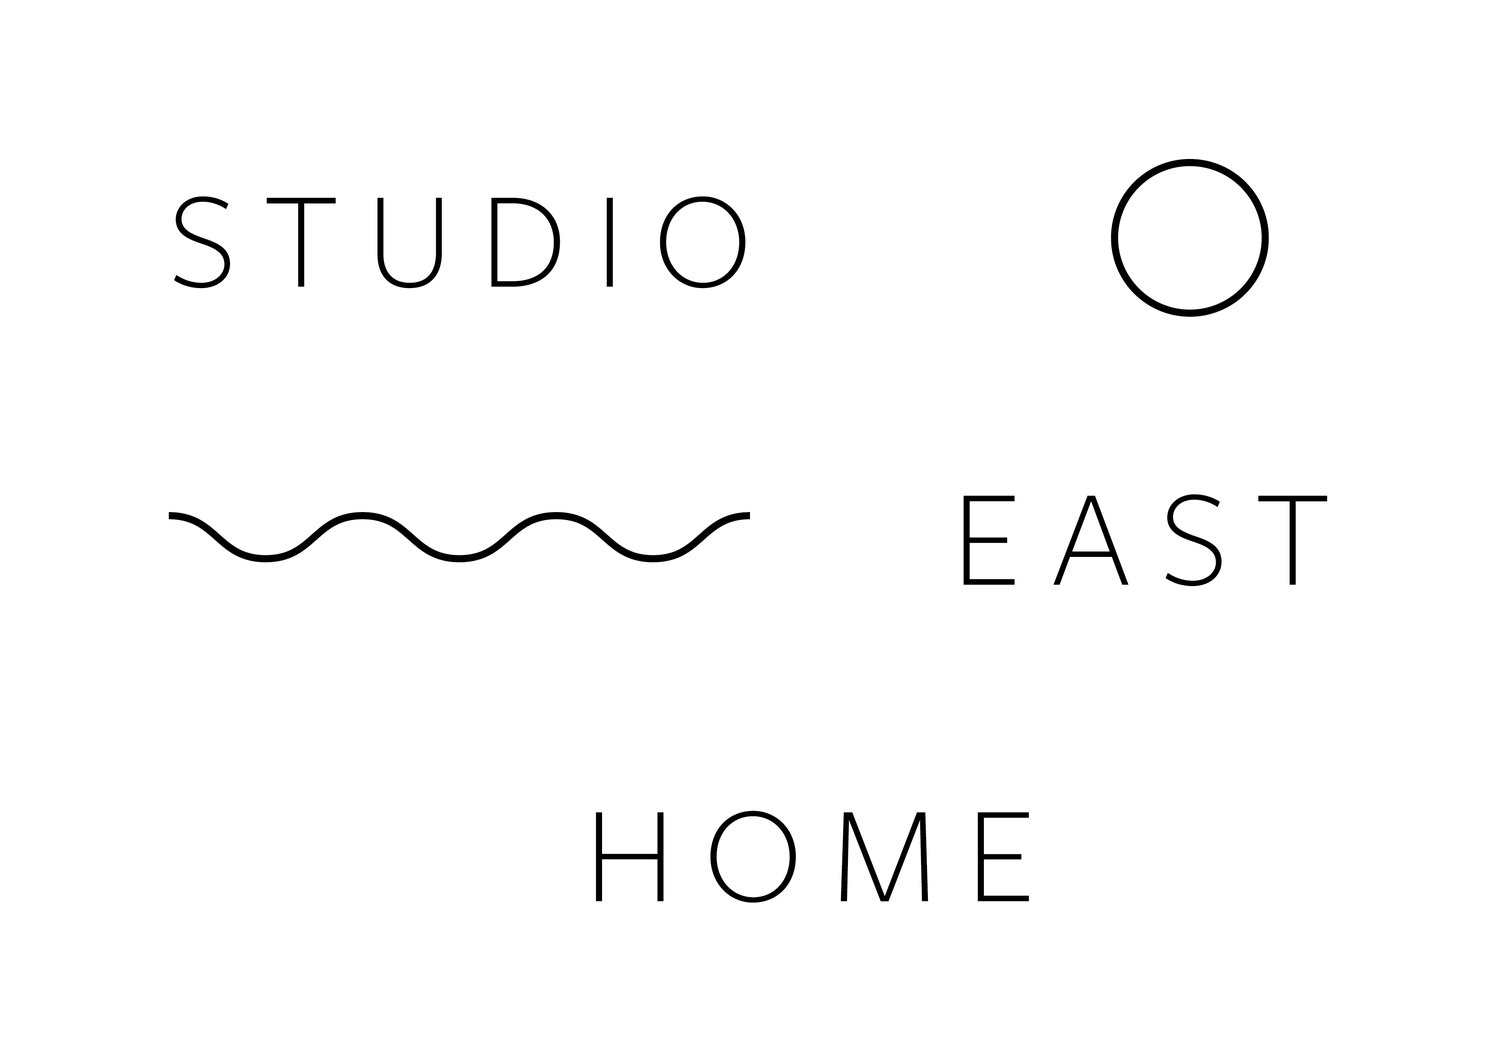 STUDIO EAST HOME